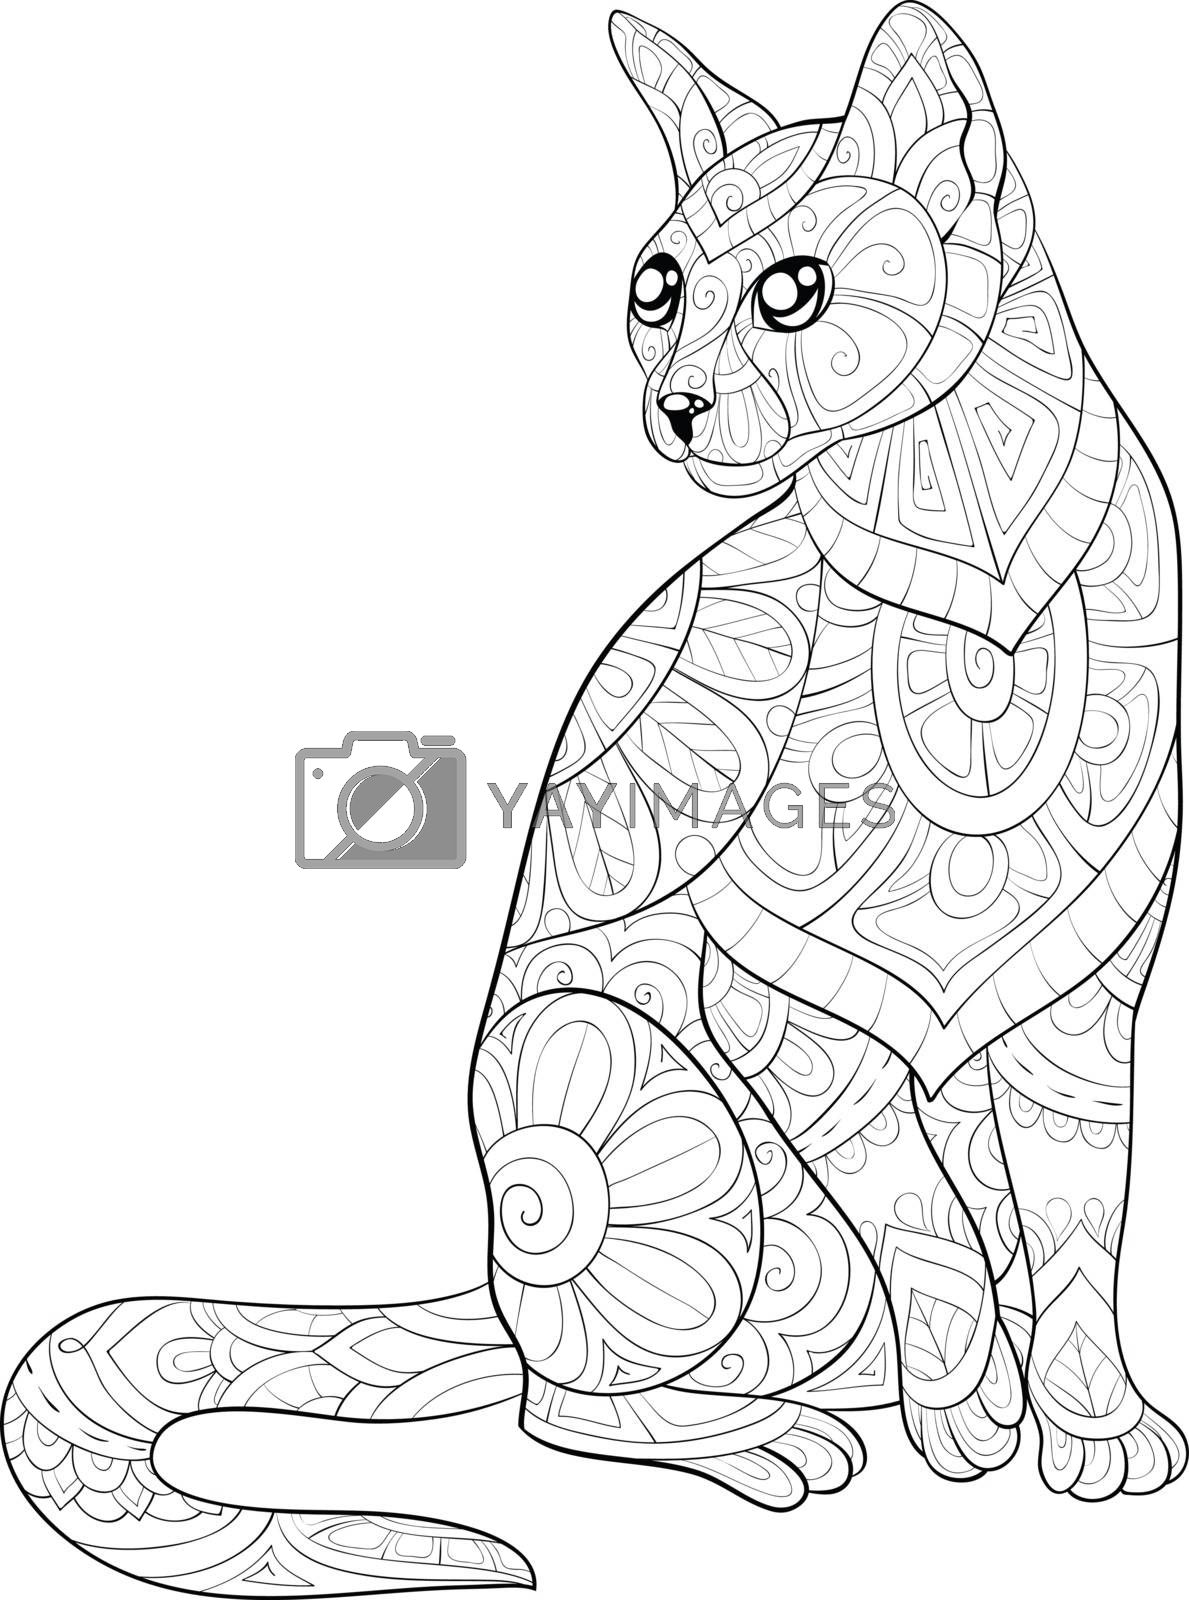 Adult coloring book,page a cute cat with ornaments image for rel by Nonuzza